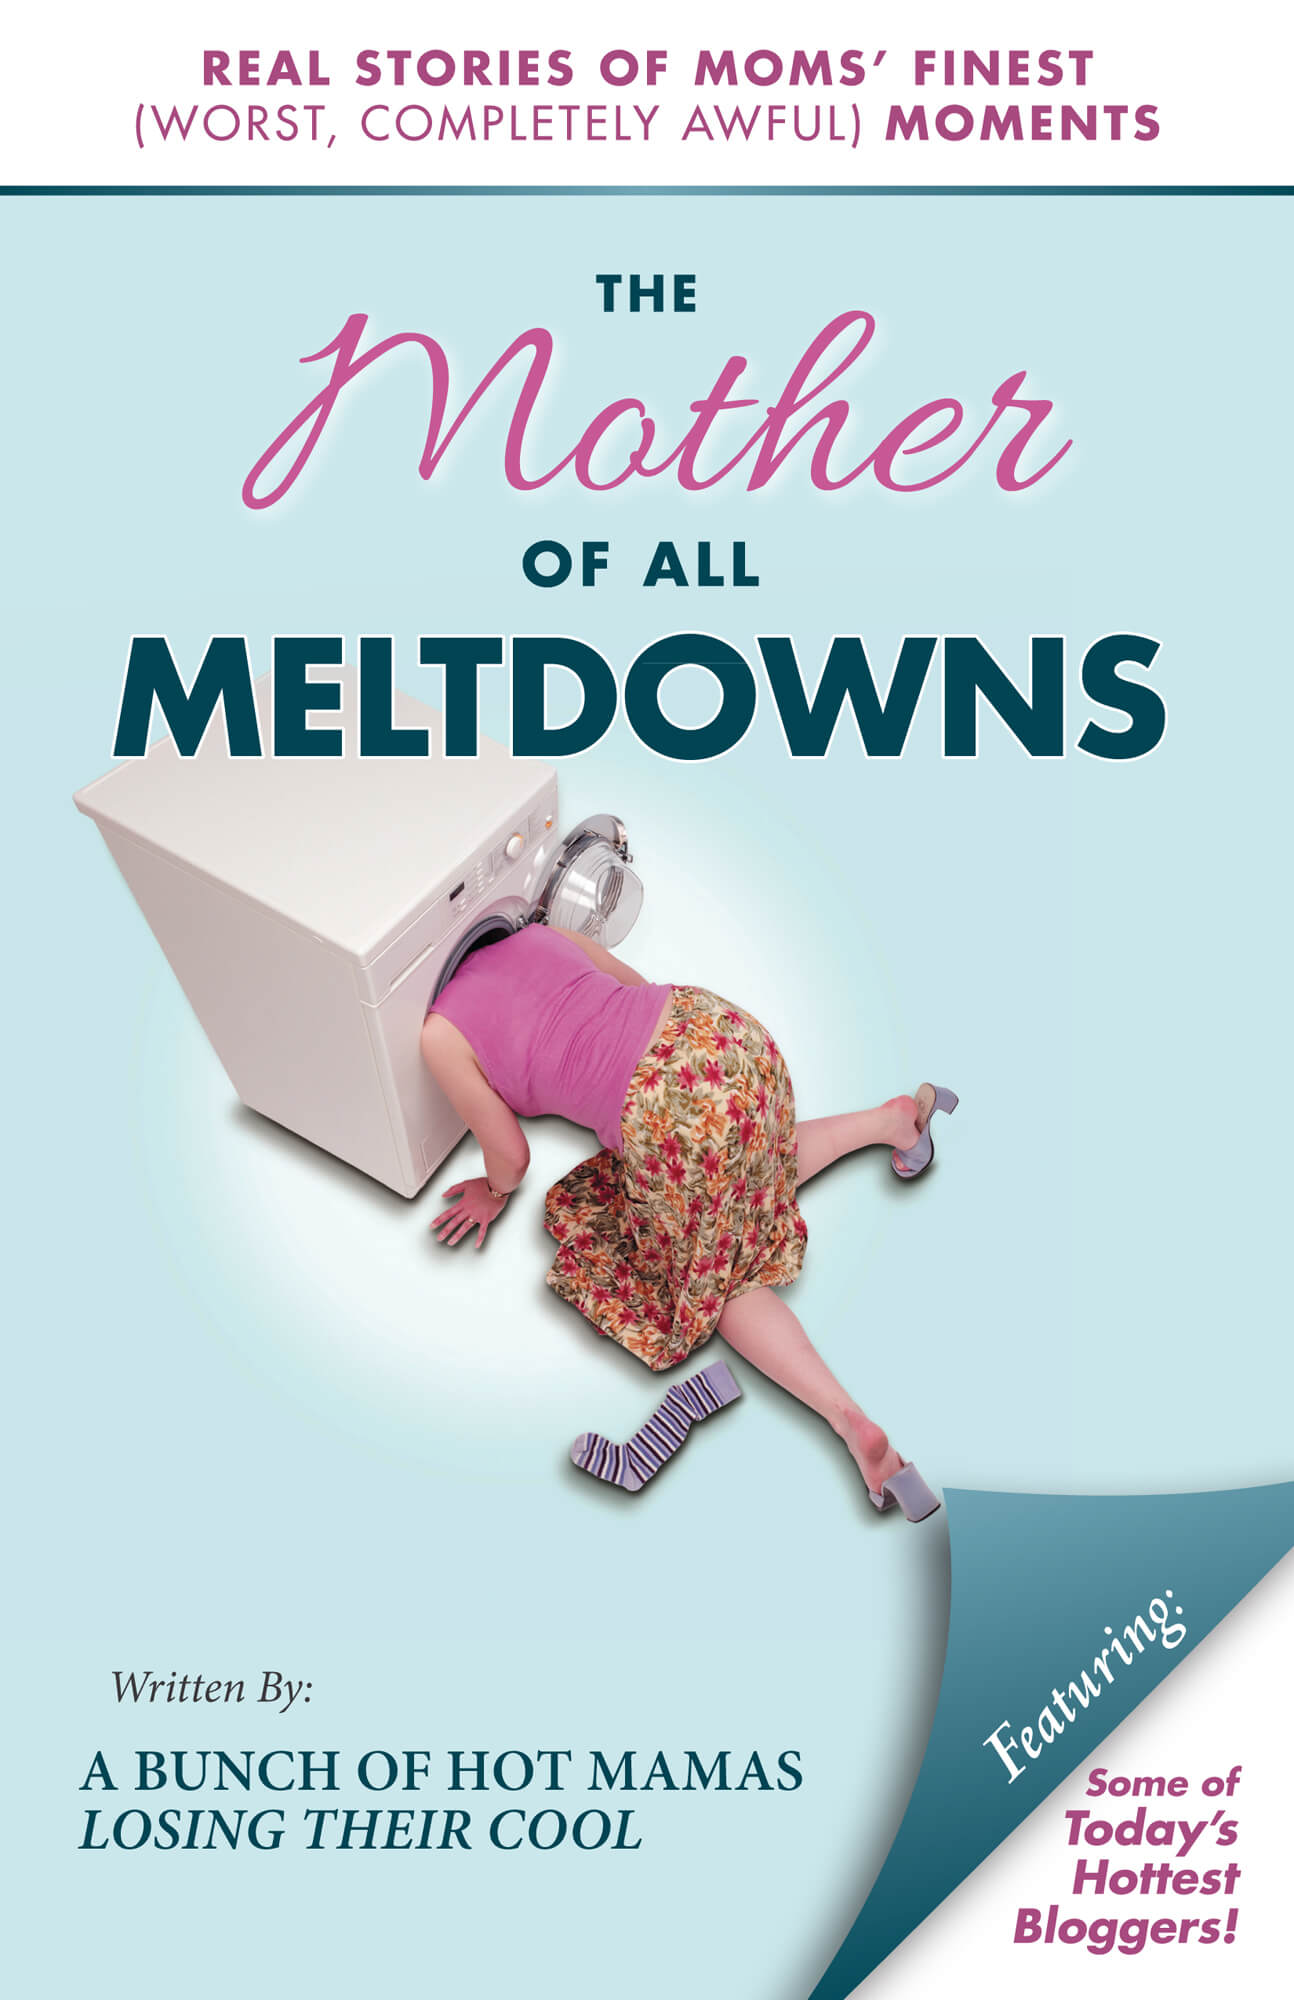 Thinking Outside The Sandbox: Business The_Mother_of_All_Meltdowns_-_Cover_web-3 The Career Meltdown That Led To Entrepreneurship All Posts  wahm small business sahm mother of all meltdowns entreprenuer e-book career business